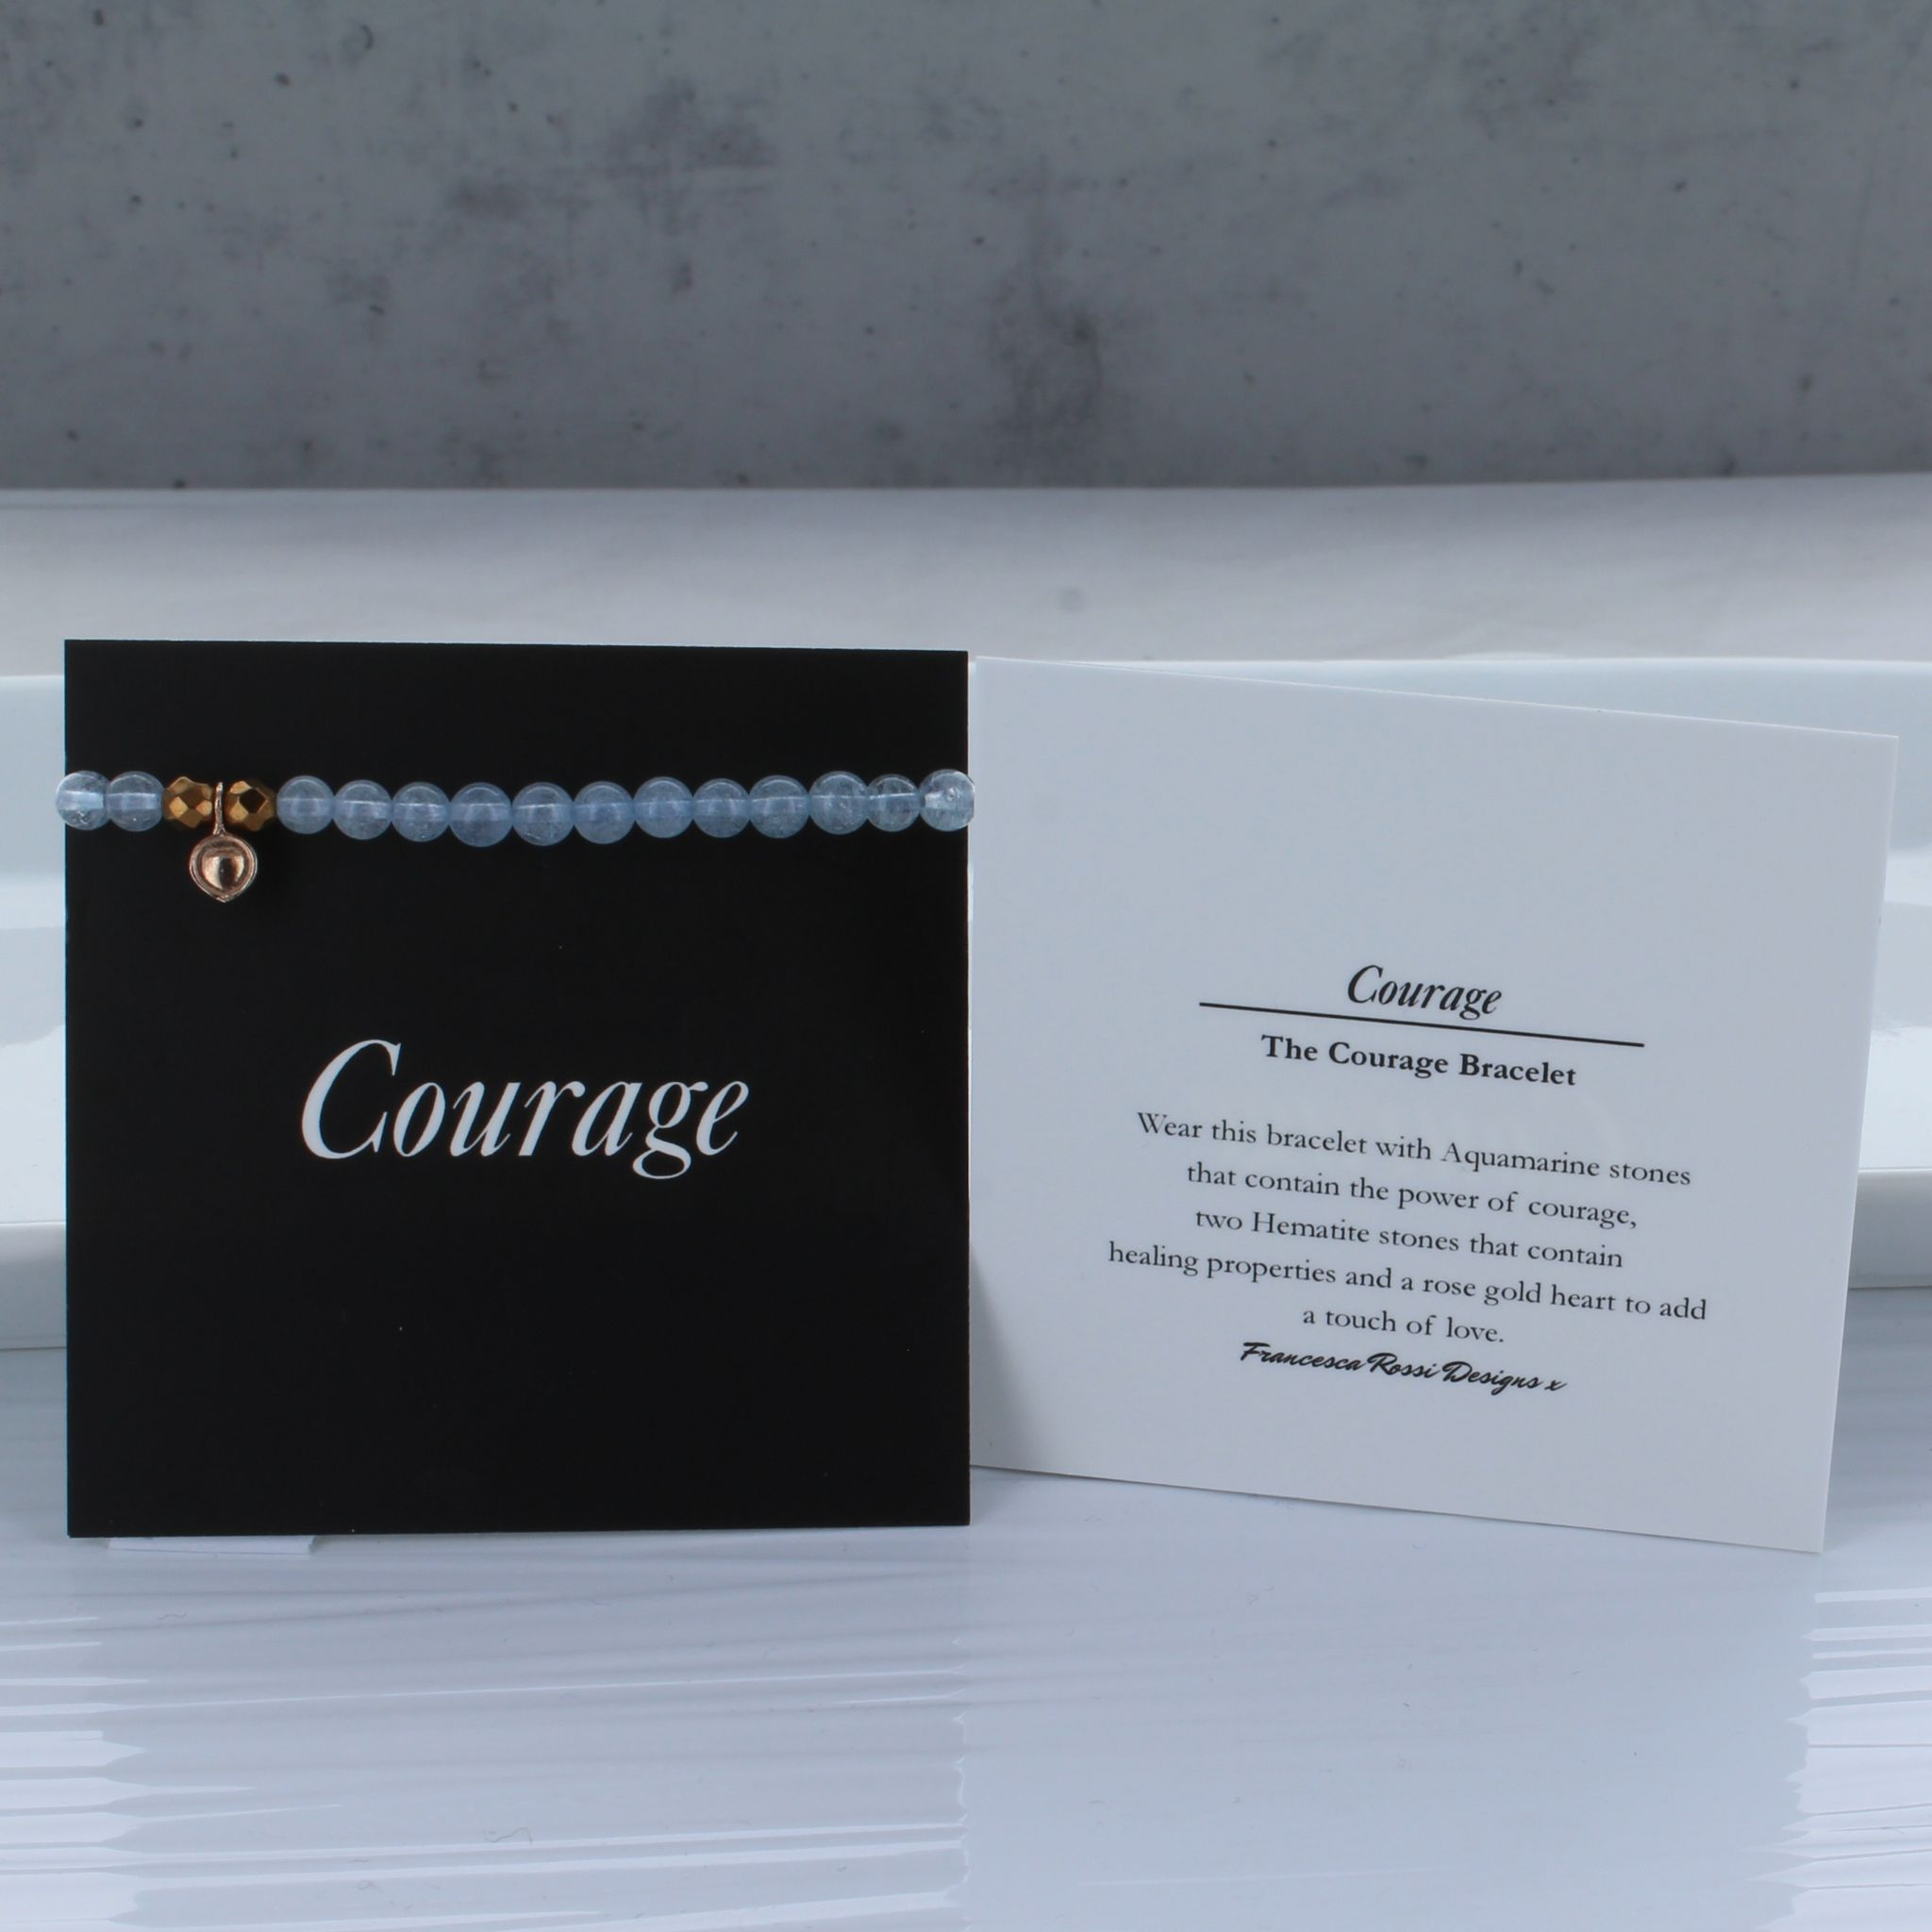 kate bracelets spade products new york have courage bangle enlarged jewelry bracelet